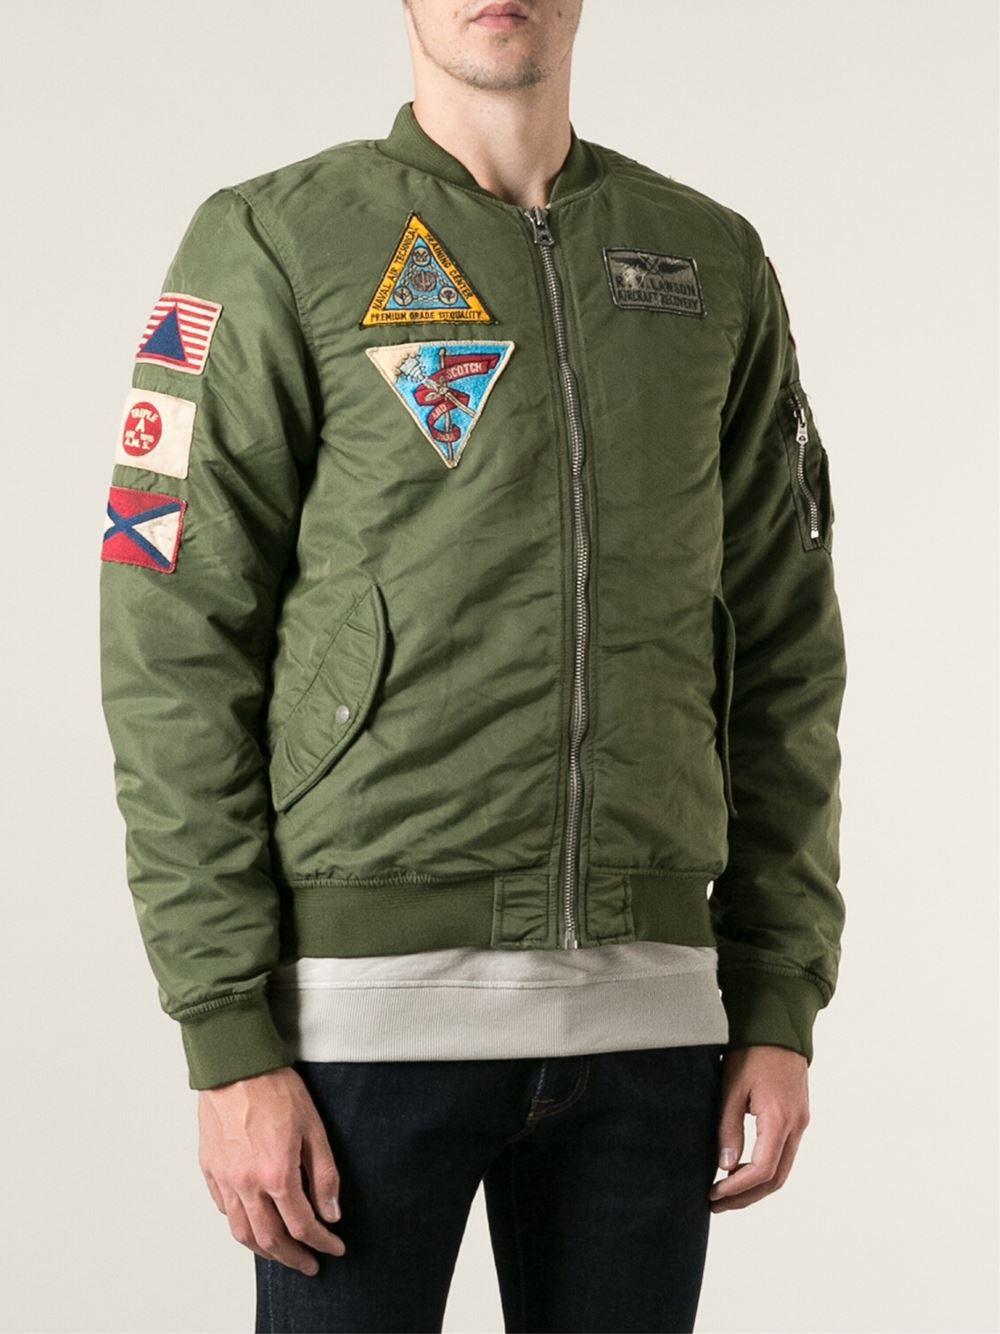 Scotch & soda Military Style Patched Jacket in Green for ...